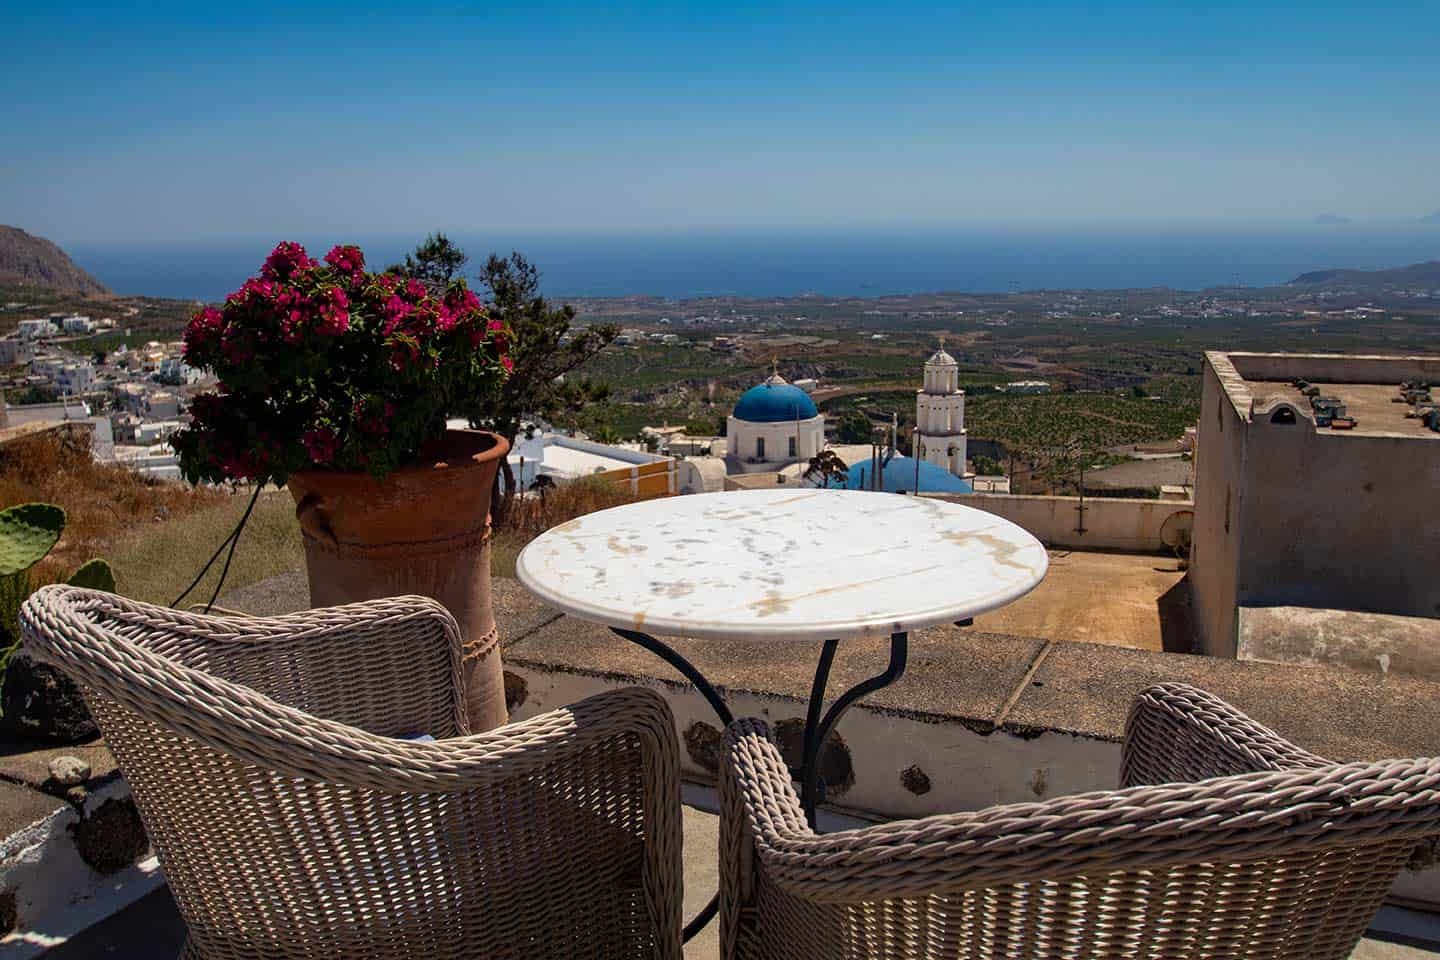 Image of cafe table overlooking Pyrgos and the Santorini coast